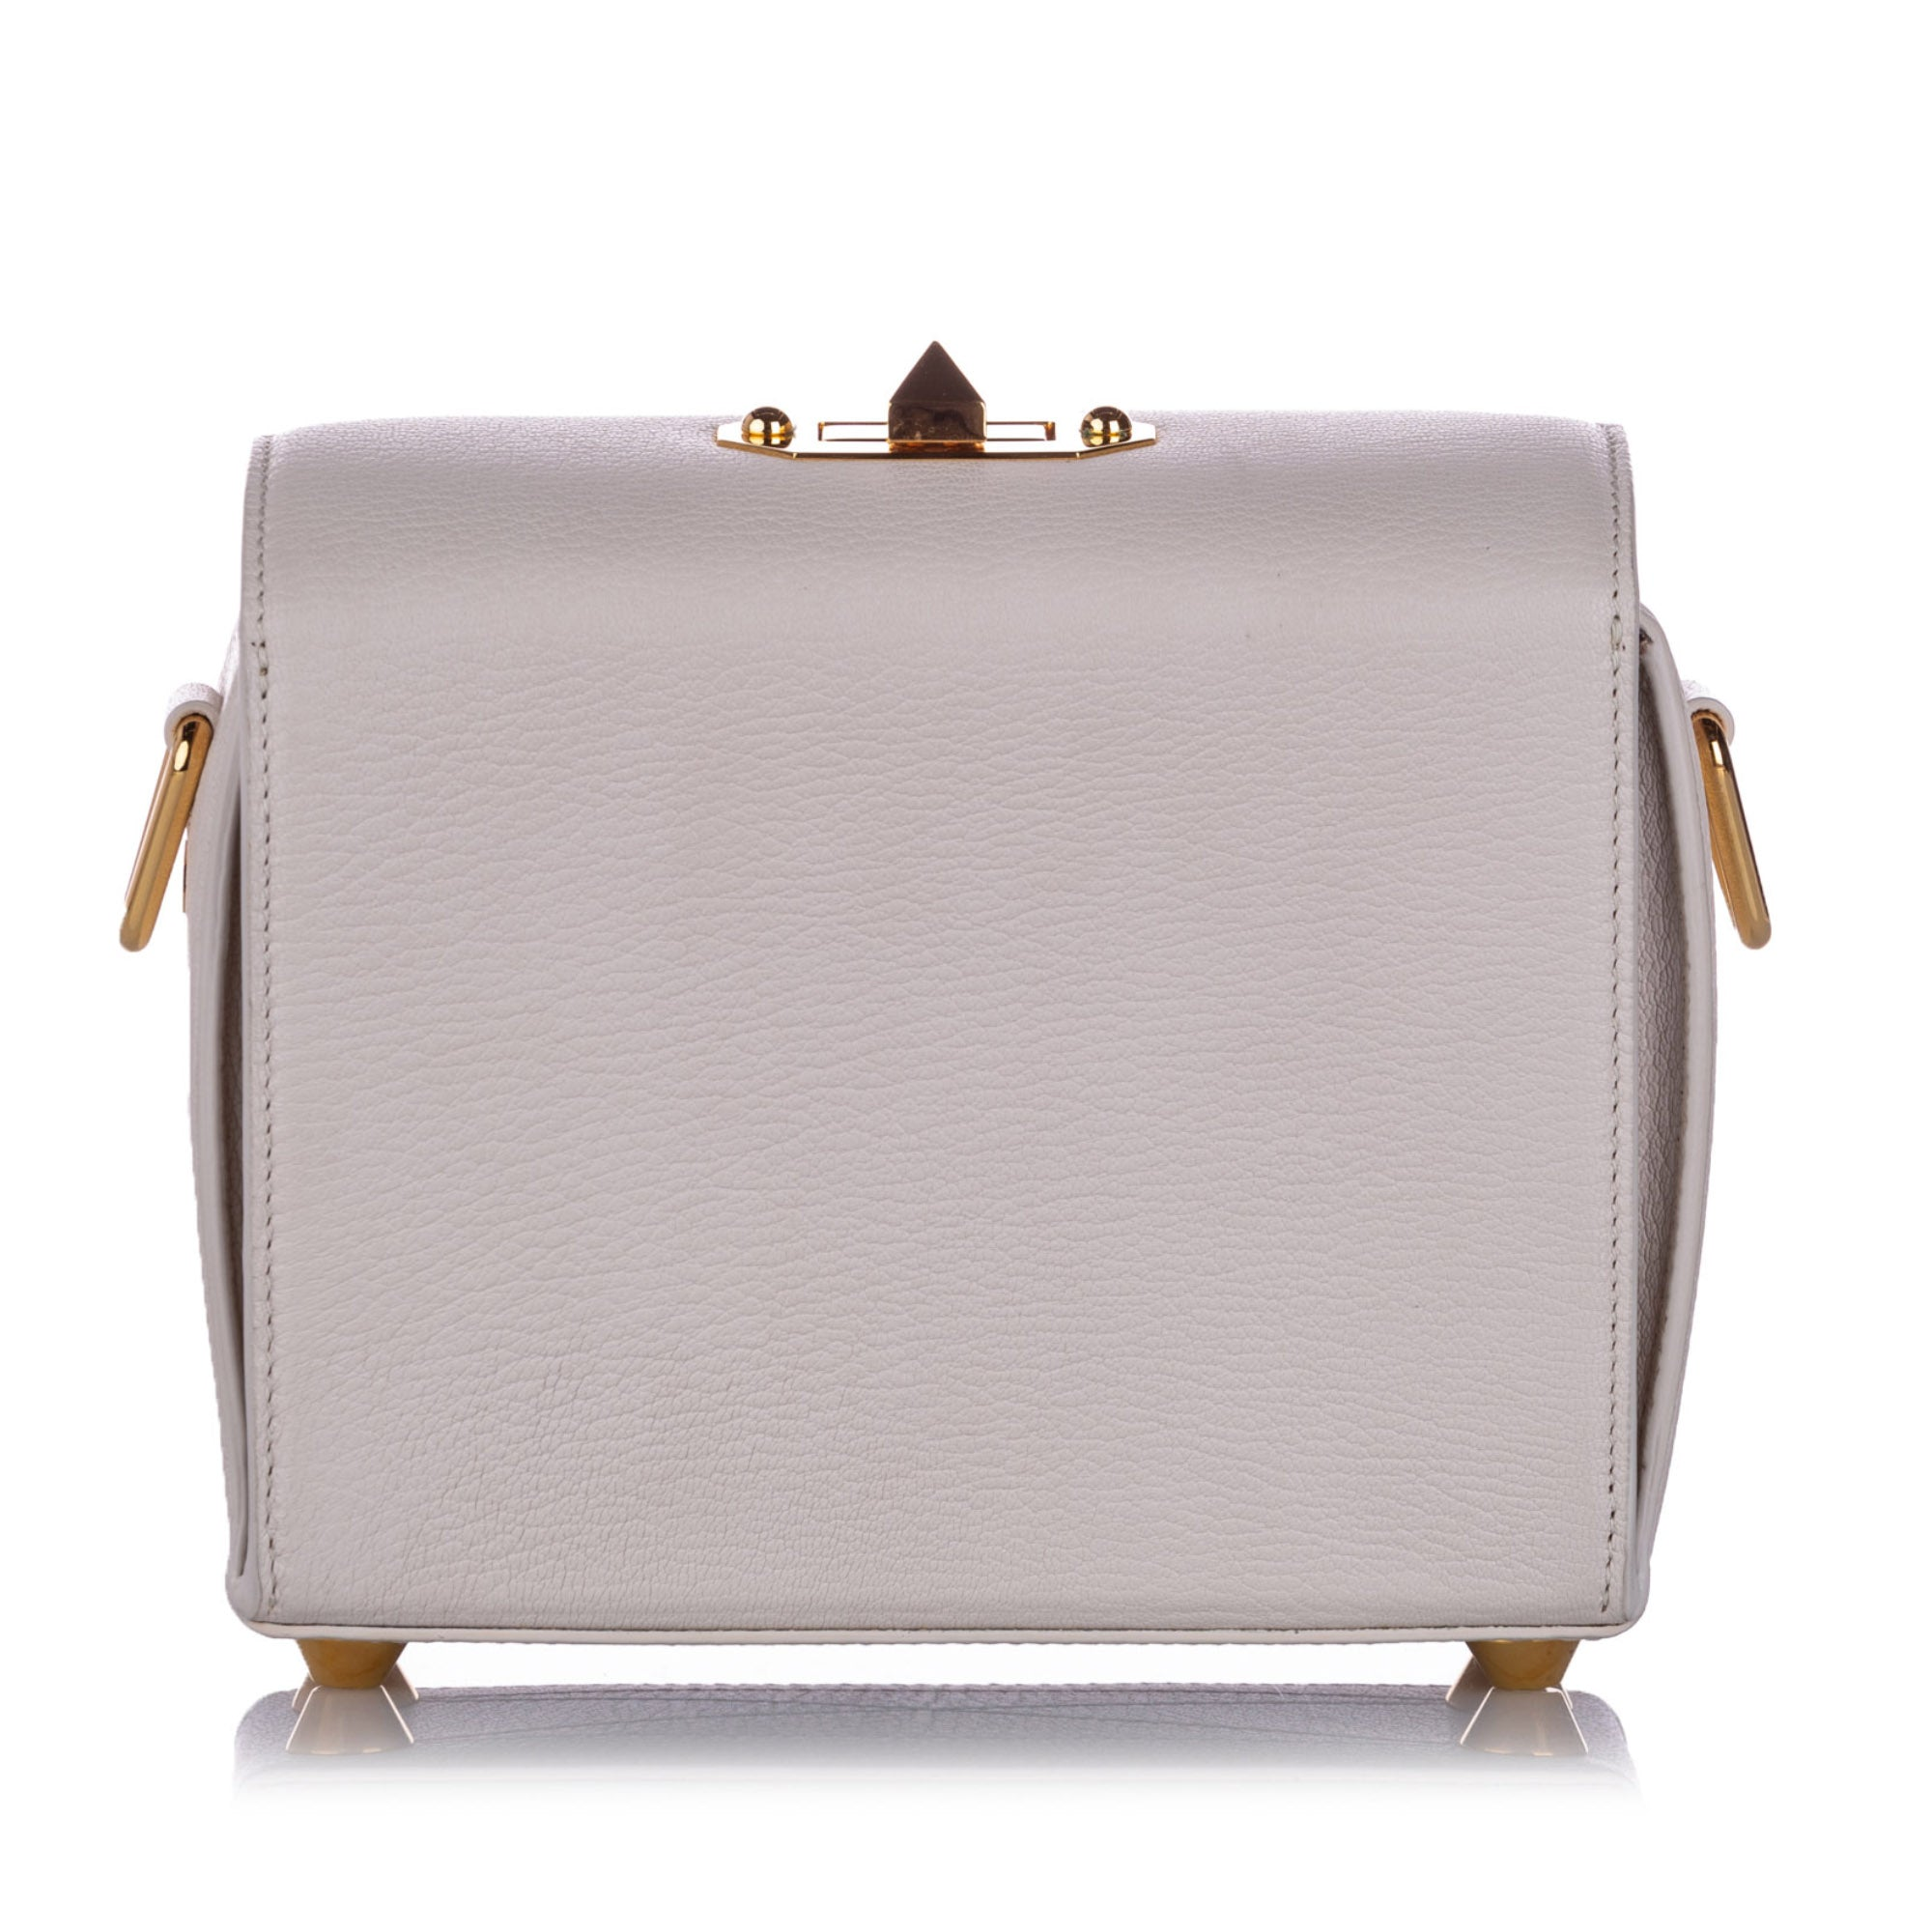 Alexander McQueen White Box 19 Leather Crossbody Bag